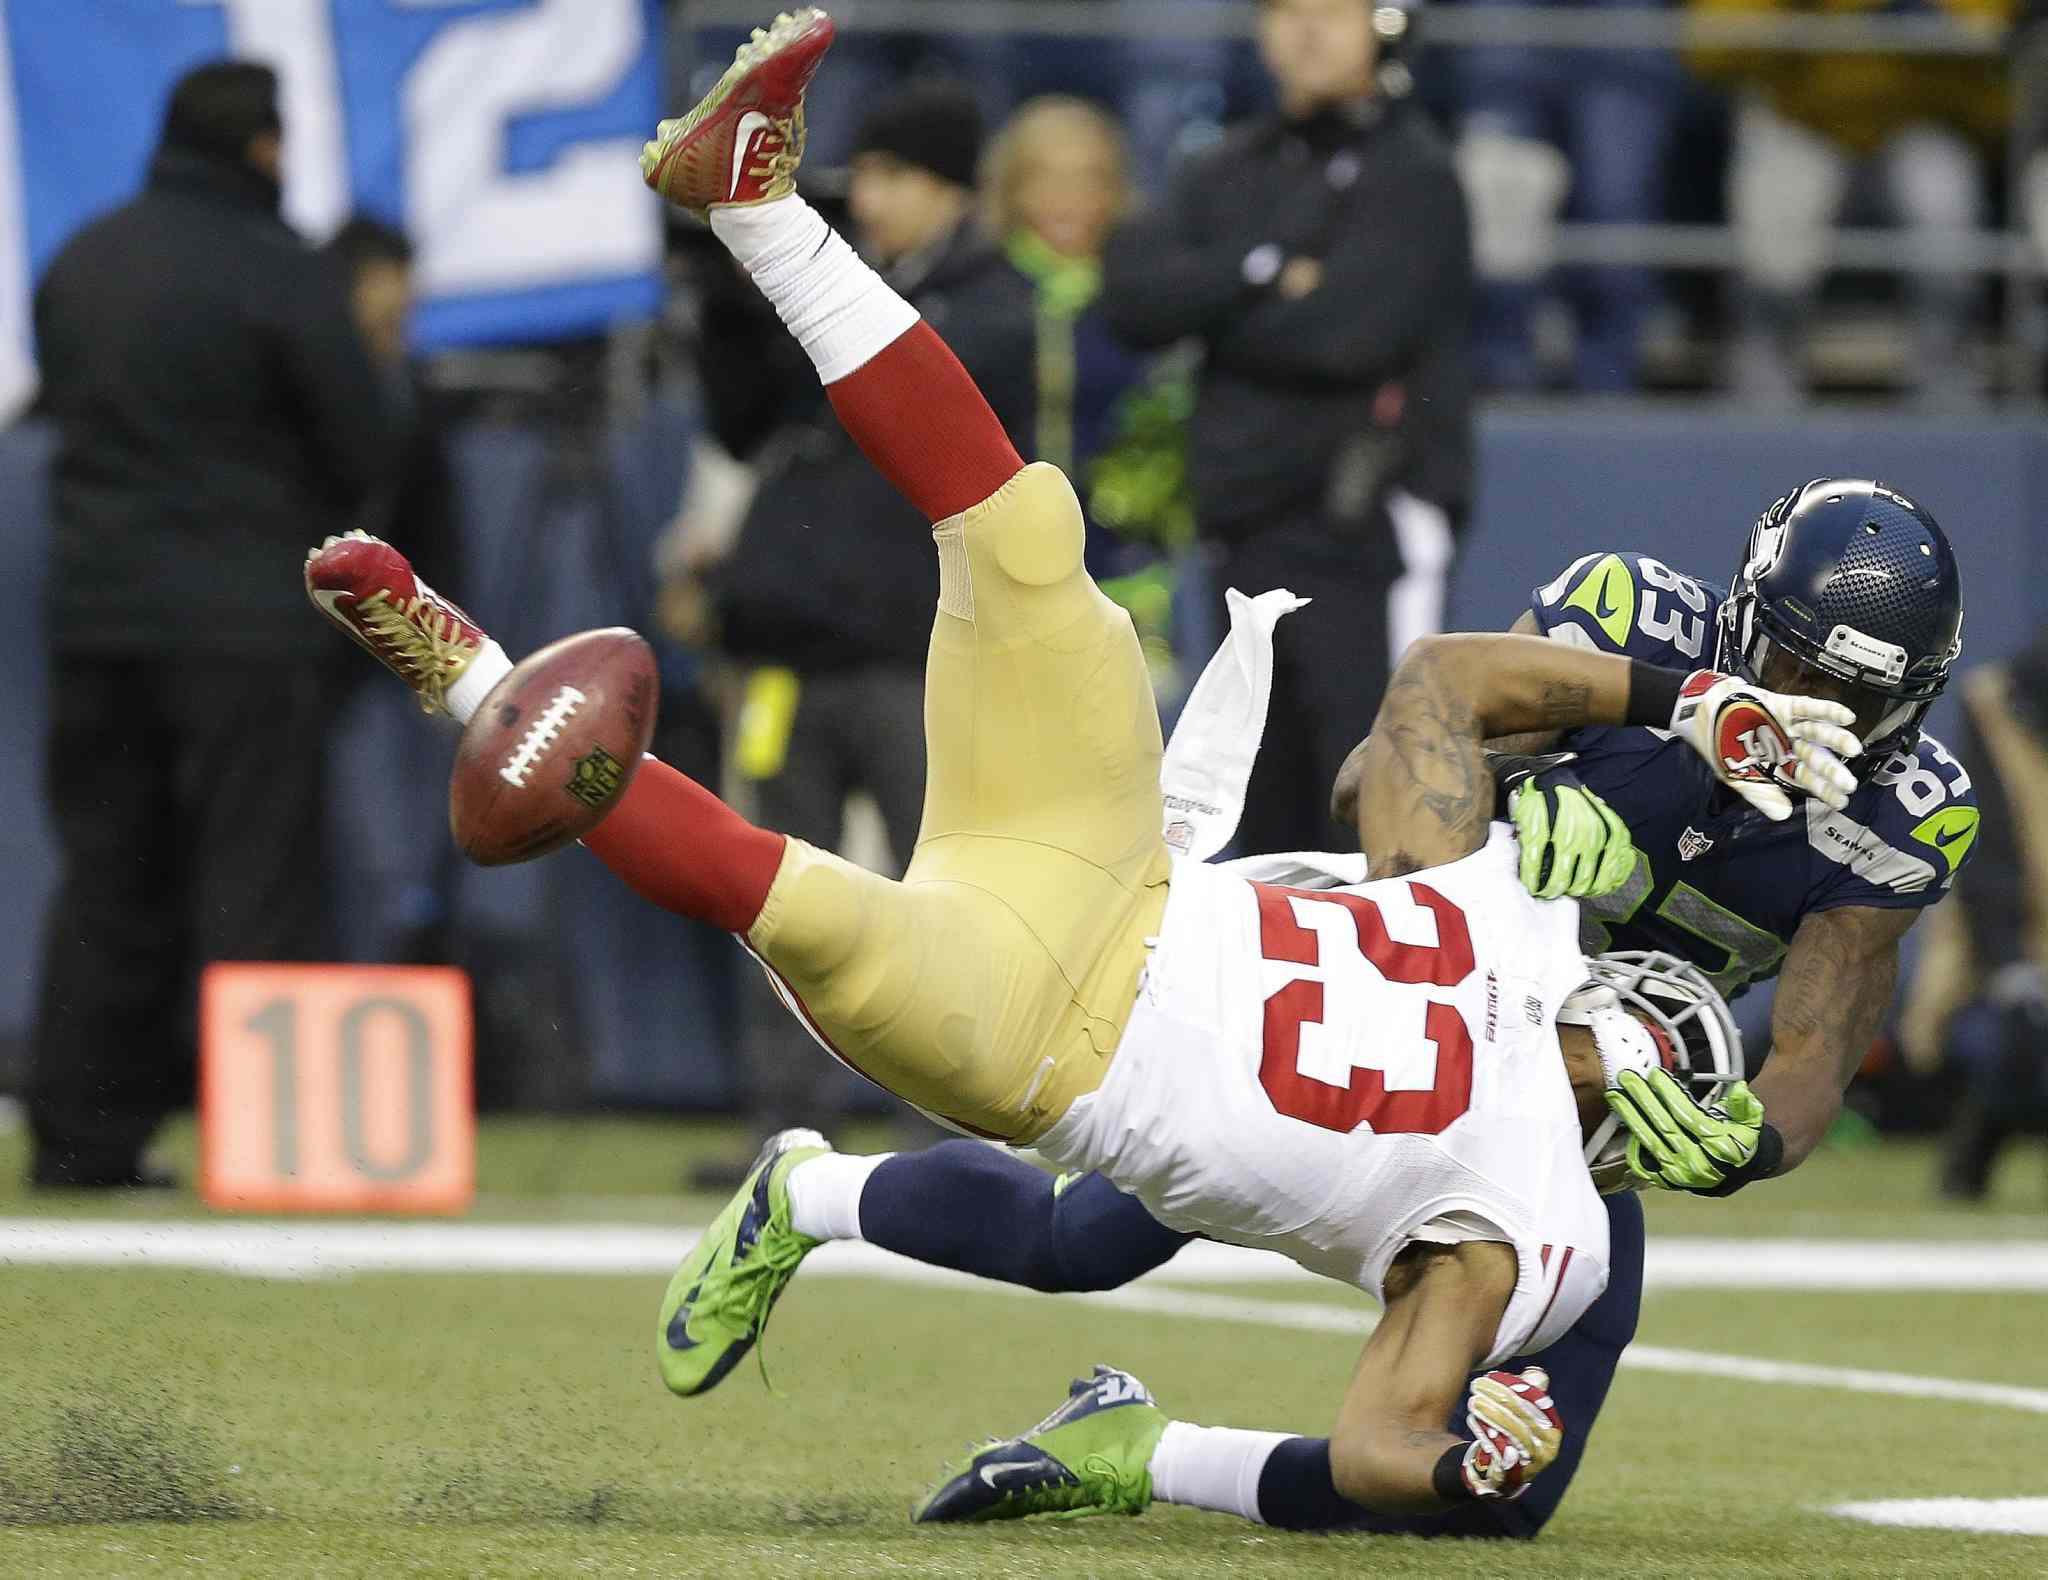 49ers' LaMichael James fumbles as he is hit by Seahawks Ricardo Lockette.